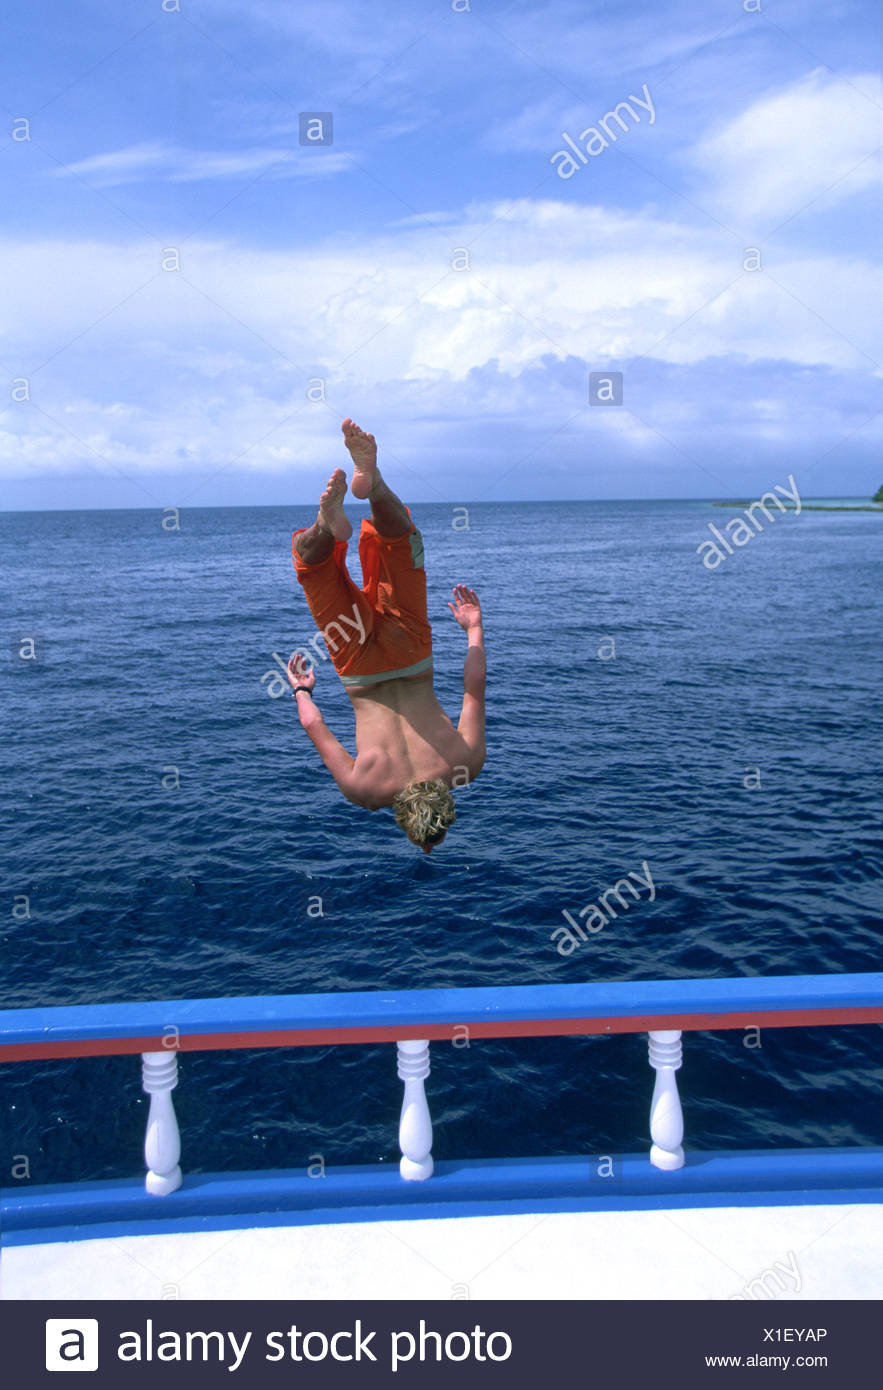 Man jumping backwards off boat into water Stock Photo: 276309342 - Alamy